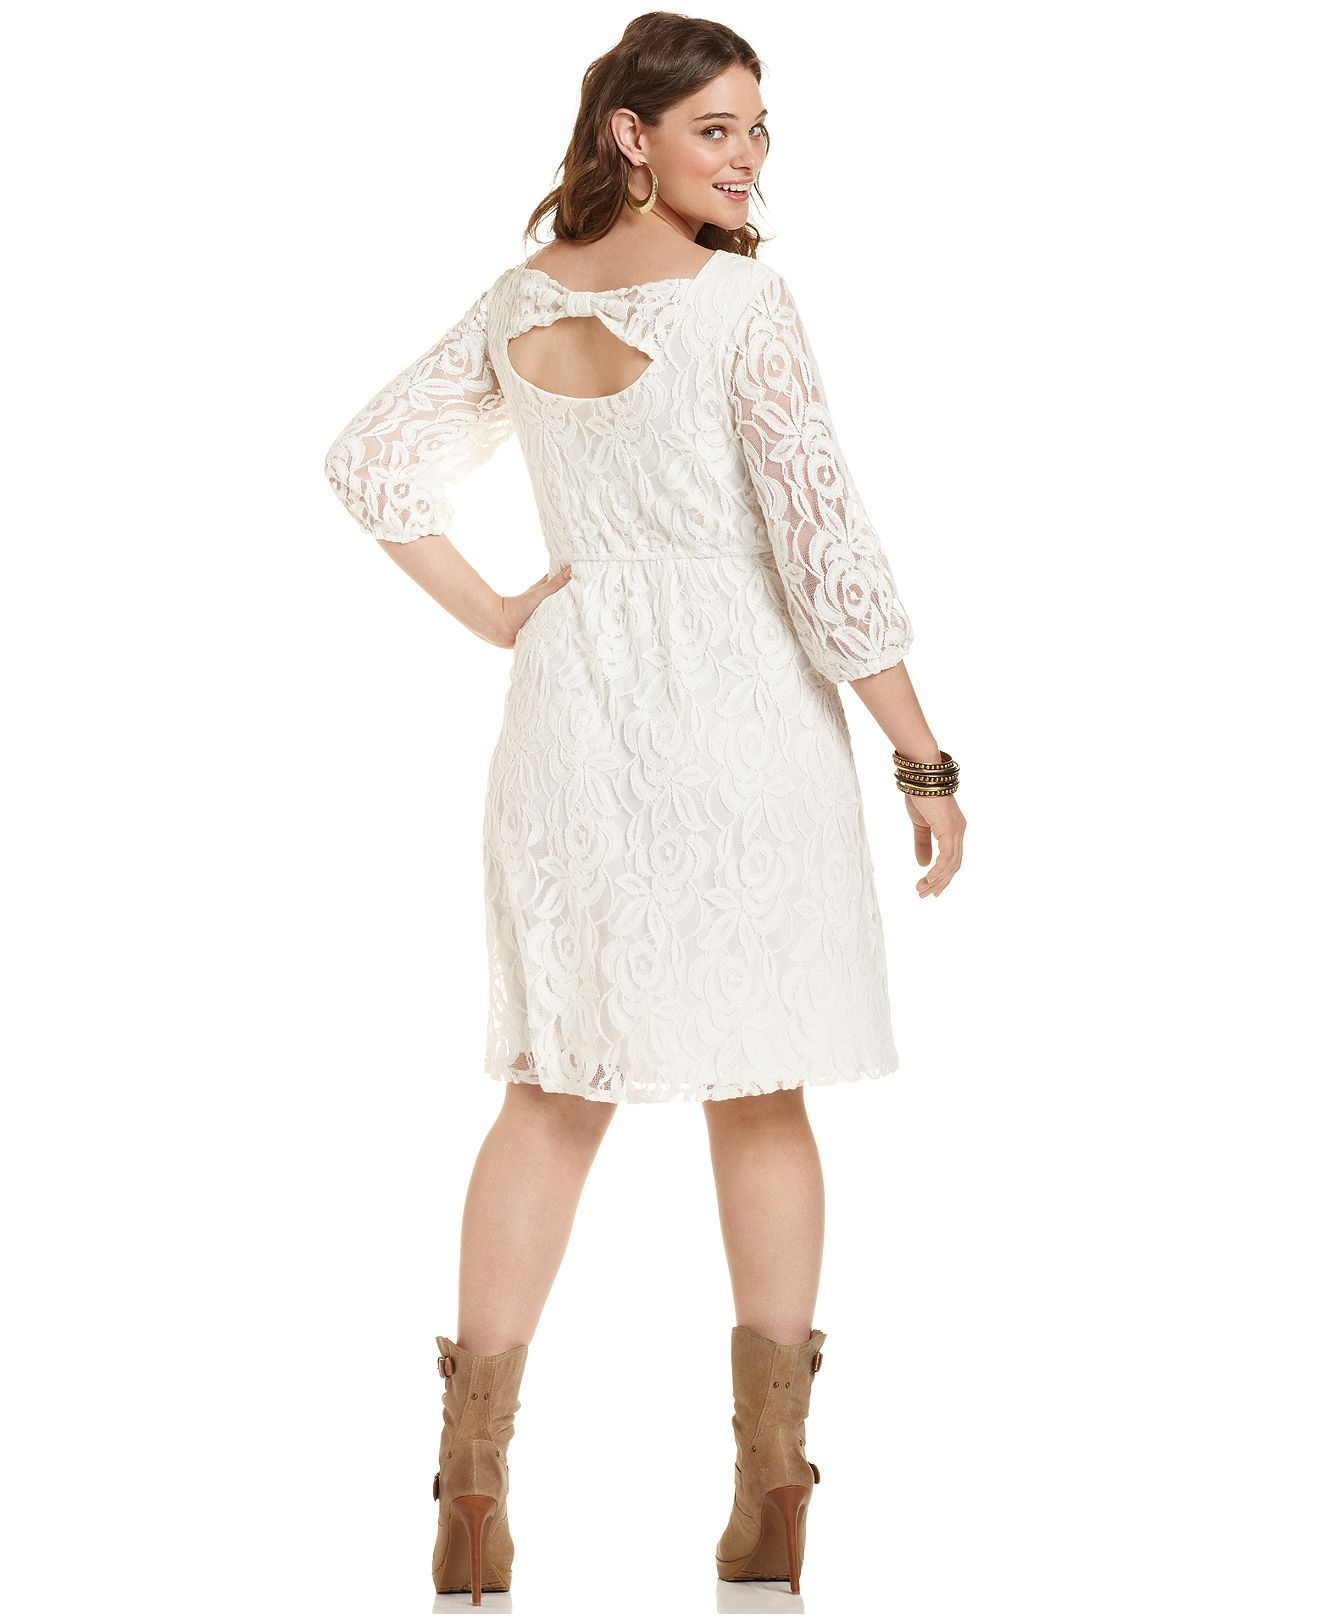 Ing plus size dress three quarter sleeve lace plus size for Macys plus size wedding dresses